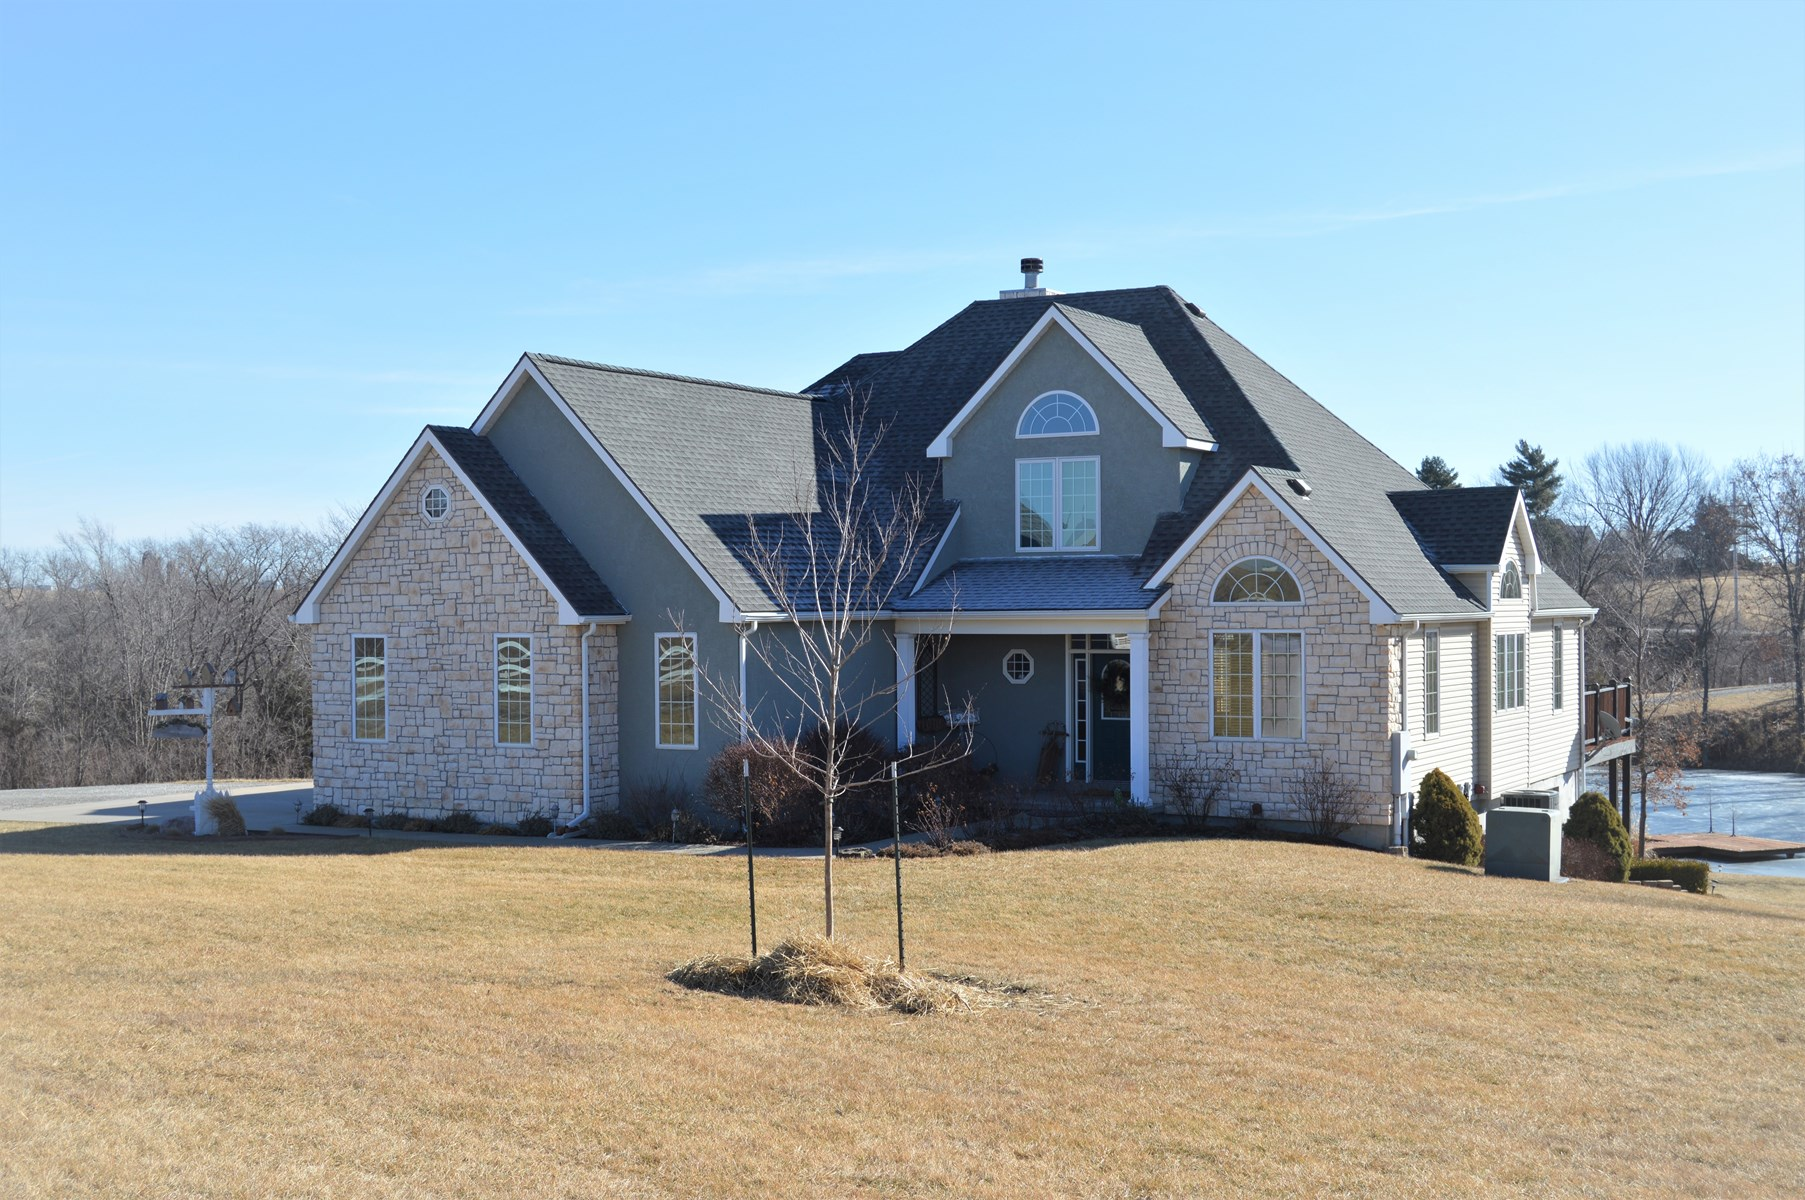 Executive Home on Acreage for Sale in Atchison County, KS